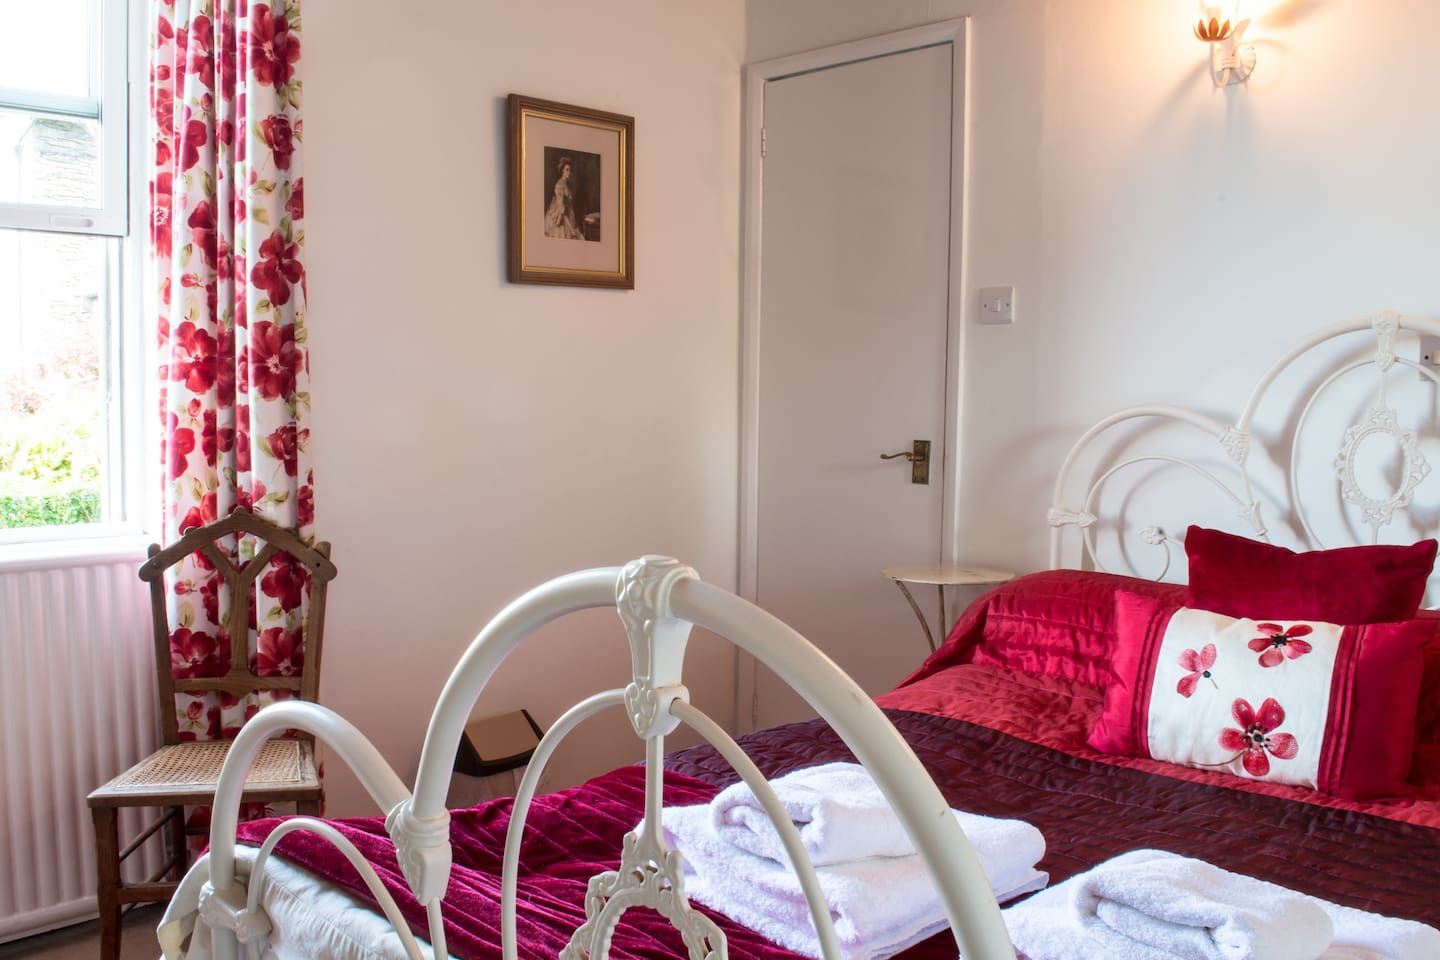 The Poppies is a small double room prettily decorated with Laura Ashley colours and soft furnishings situated on the ground floor of our Bed and Breakfast, Blenheim Lodge.